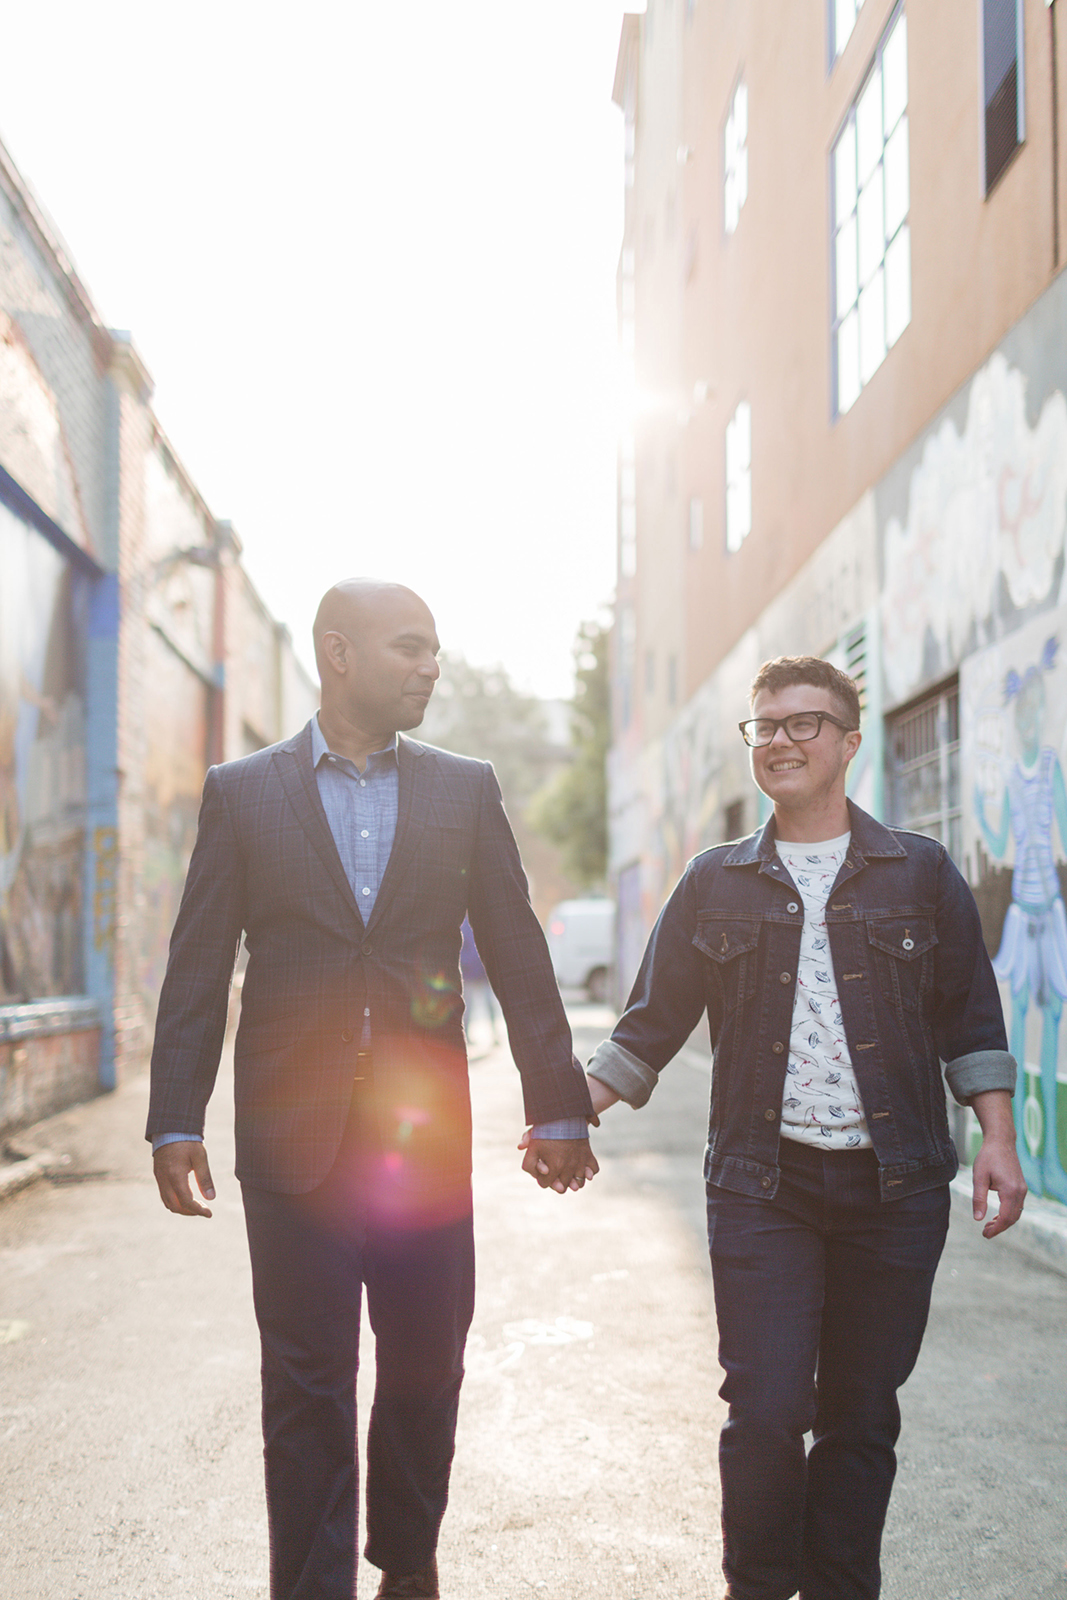 queer couples lgbt engaged walking and smiling in mission district sf